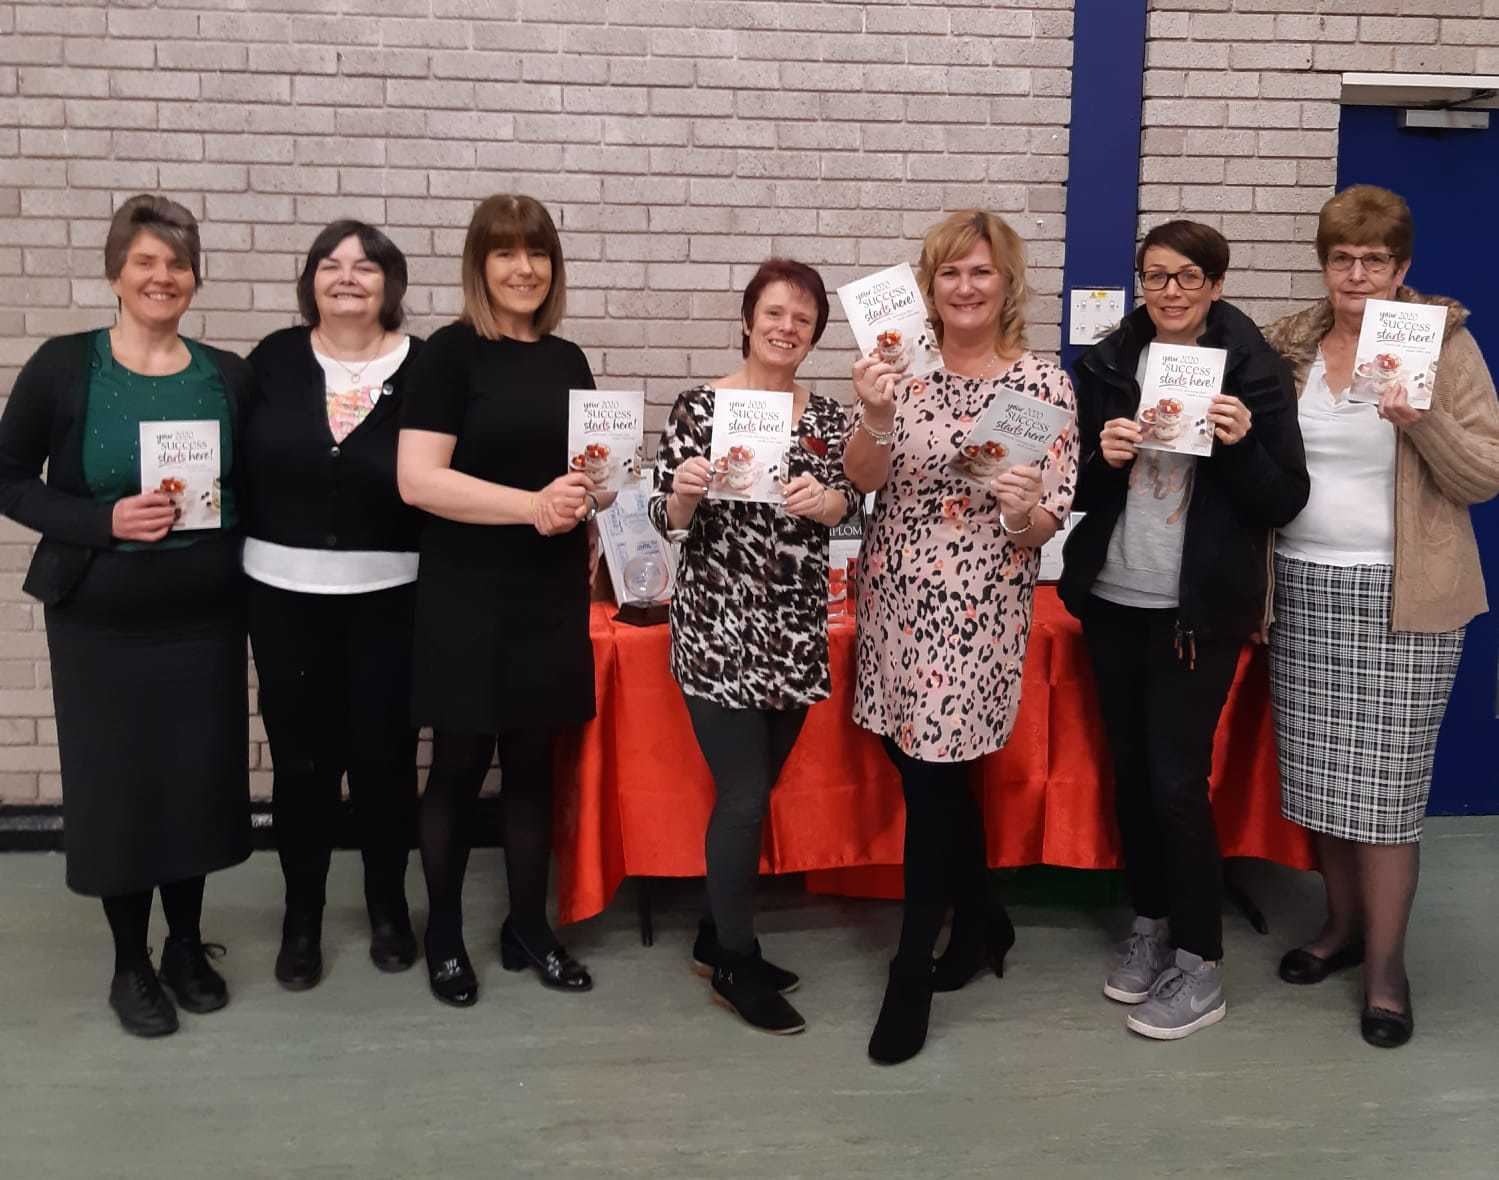 Ellesmere Port Slimming World group leader reflects on past 25 years as she aims to help even more shed the pounds